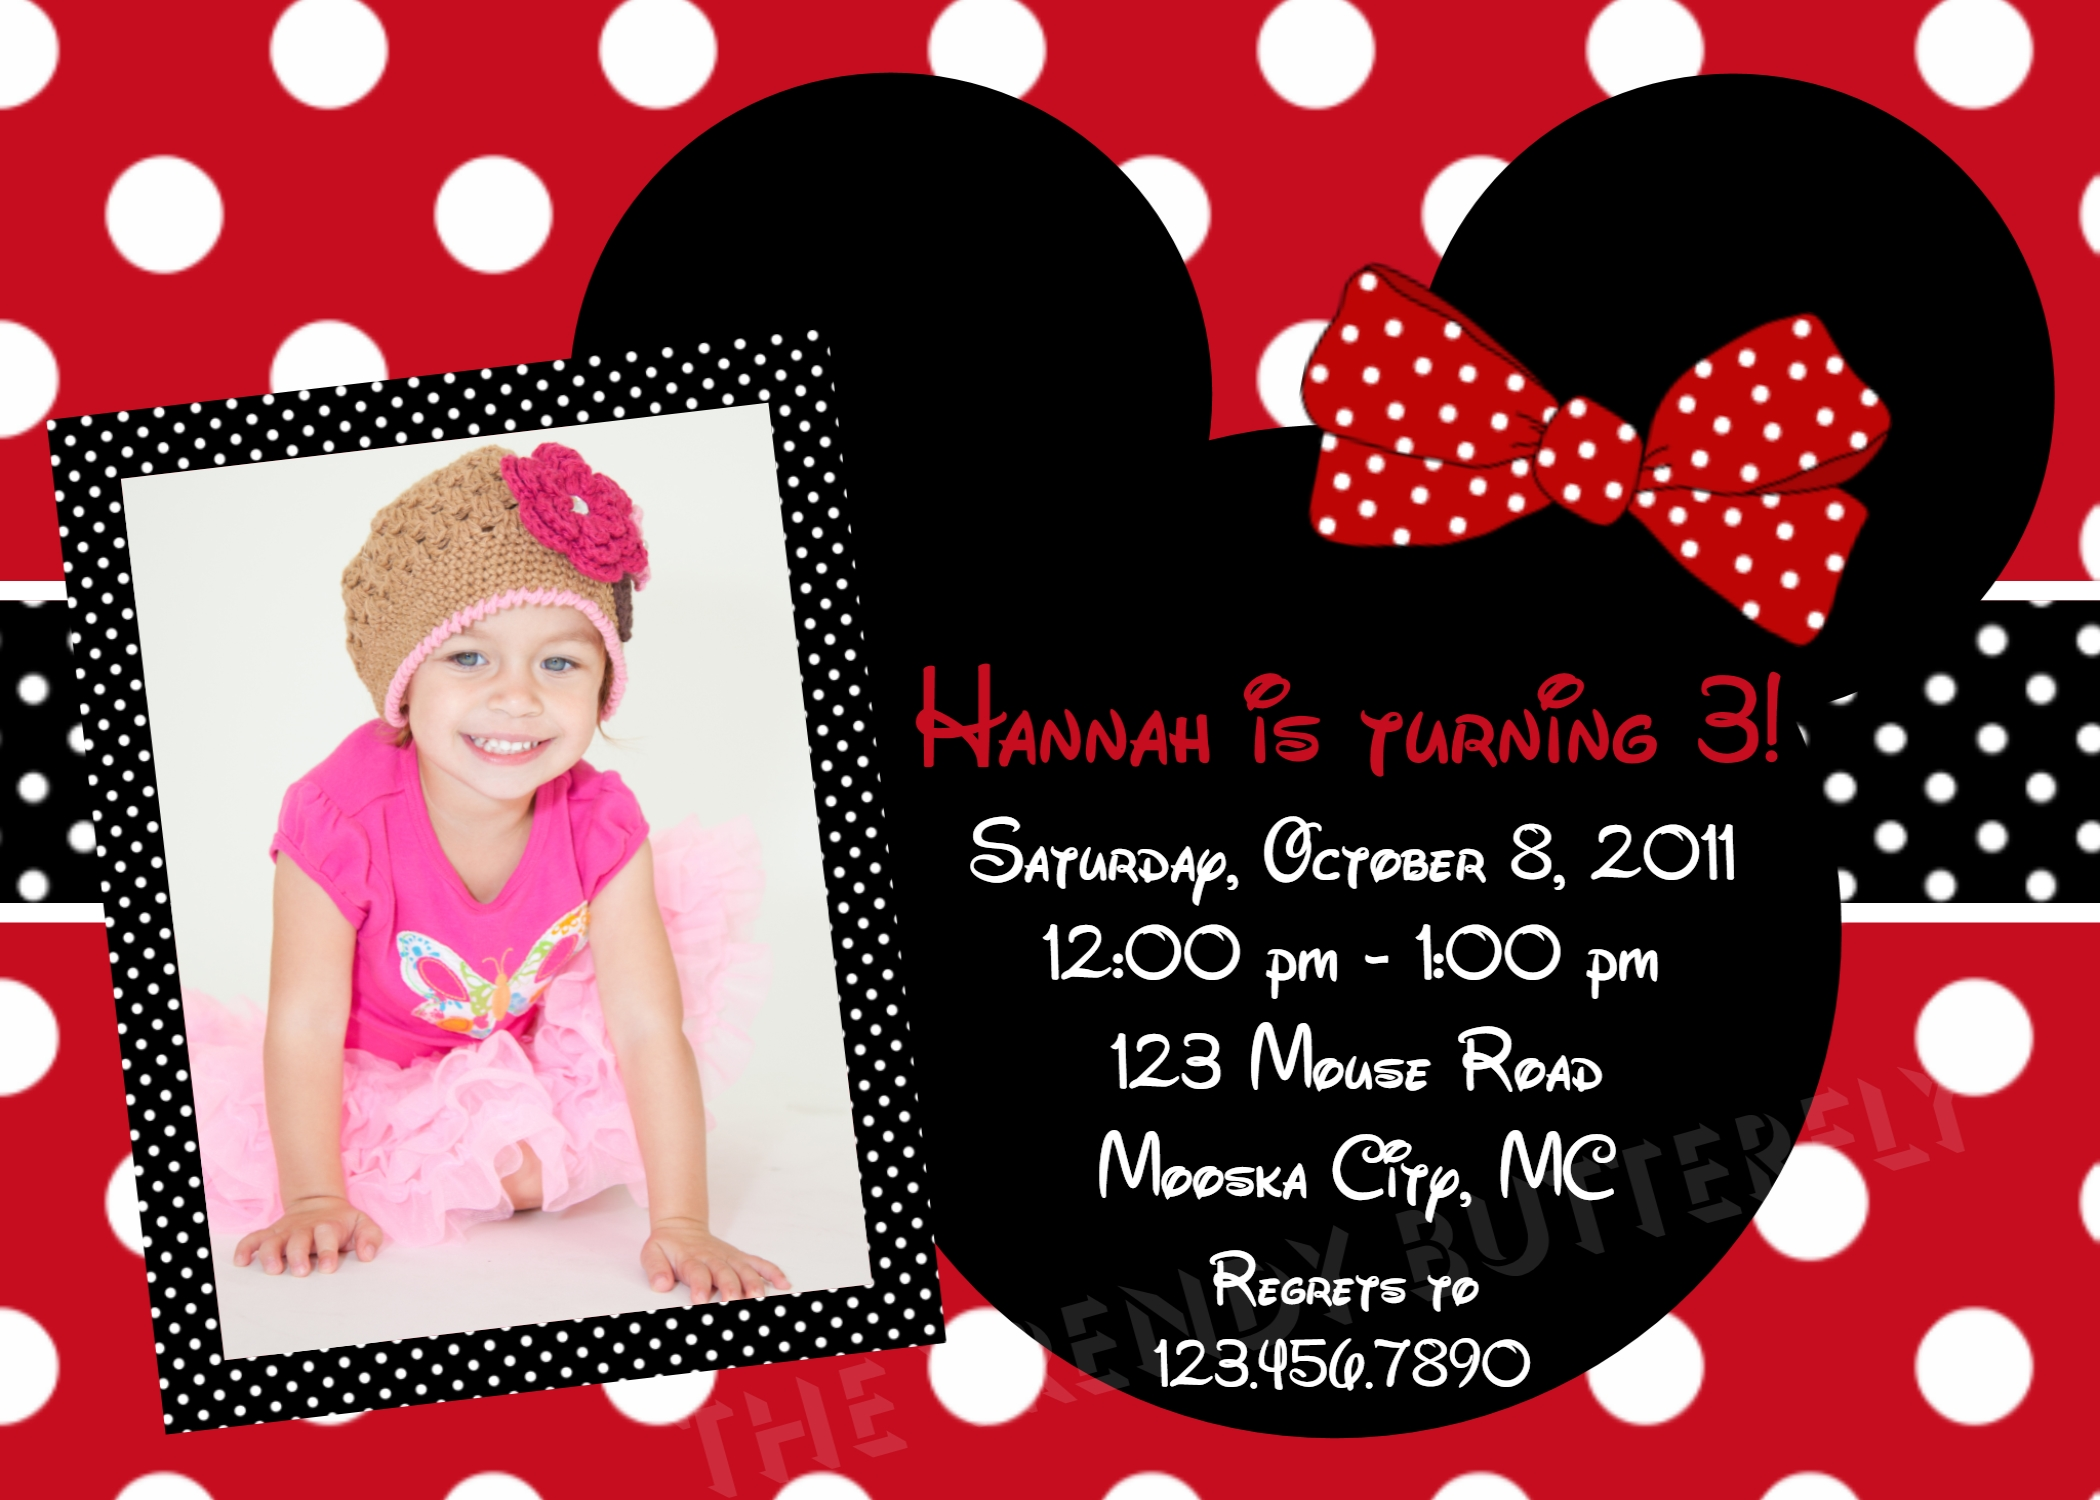 free printable minnie mouse birthday invitation templates ; stunning-minnie-mouse-birthday-invitation-templates-free-free-printable-fantastic-Birthday-invitation-for-you-14